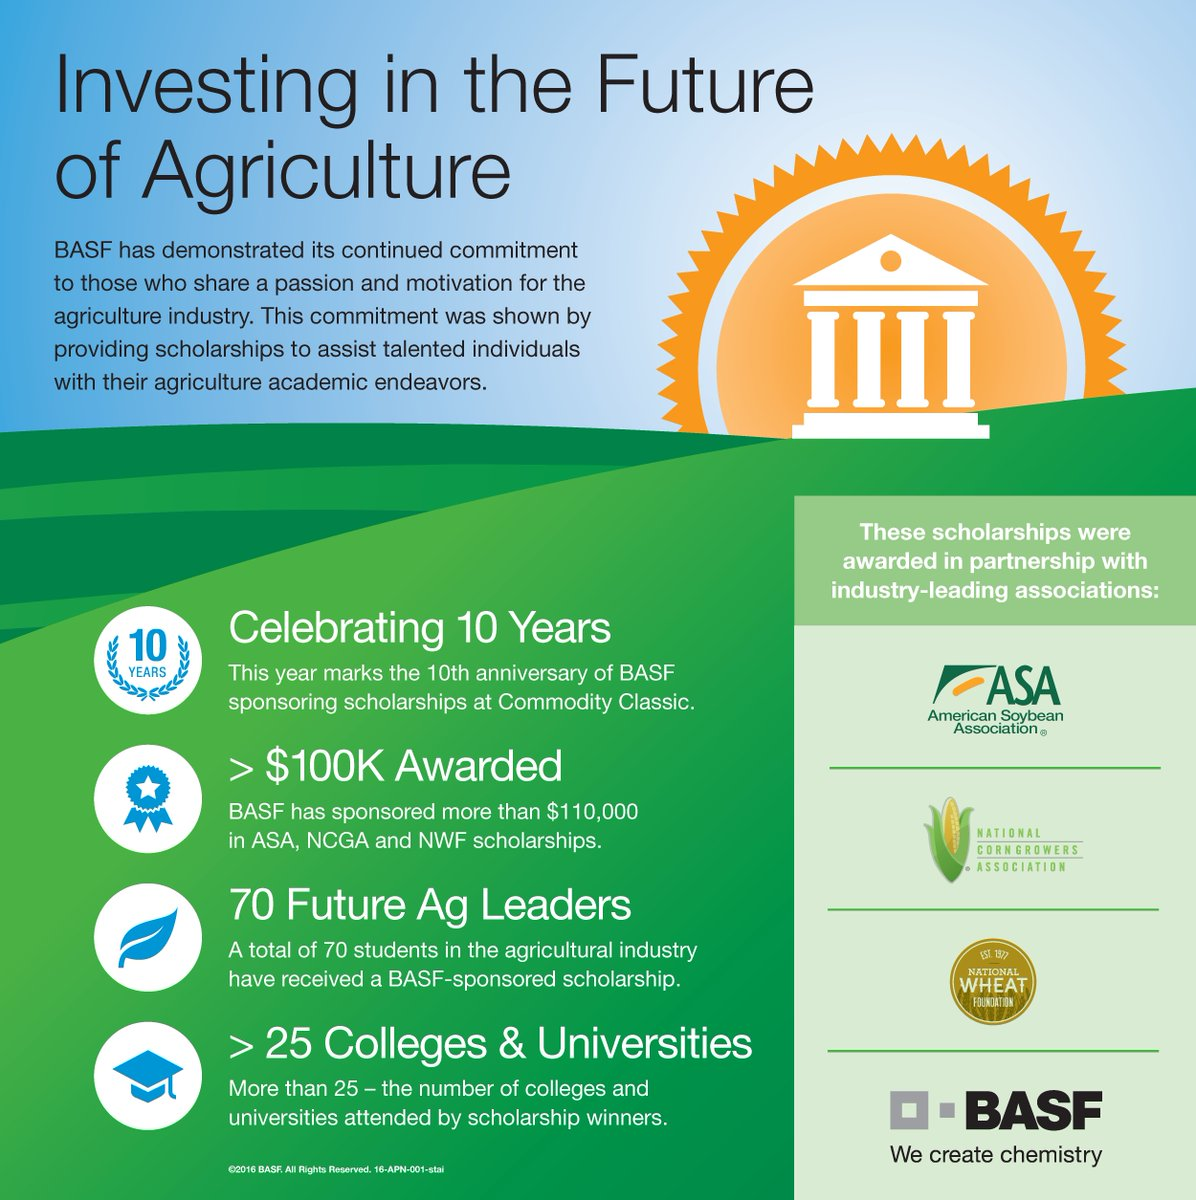 10 years of sponsoring scholarships for ag students! Thanks to our partners @NationalCorn @ASA_Soybeans @Wheatworld! https://t.co/bO0Epe4nOO